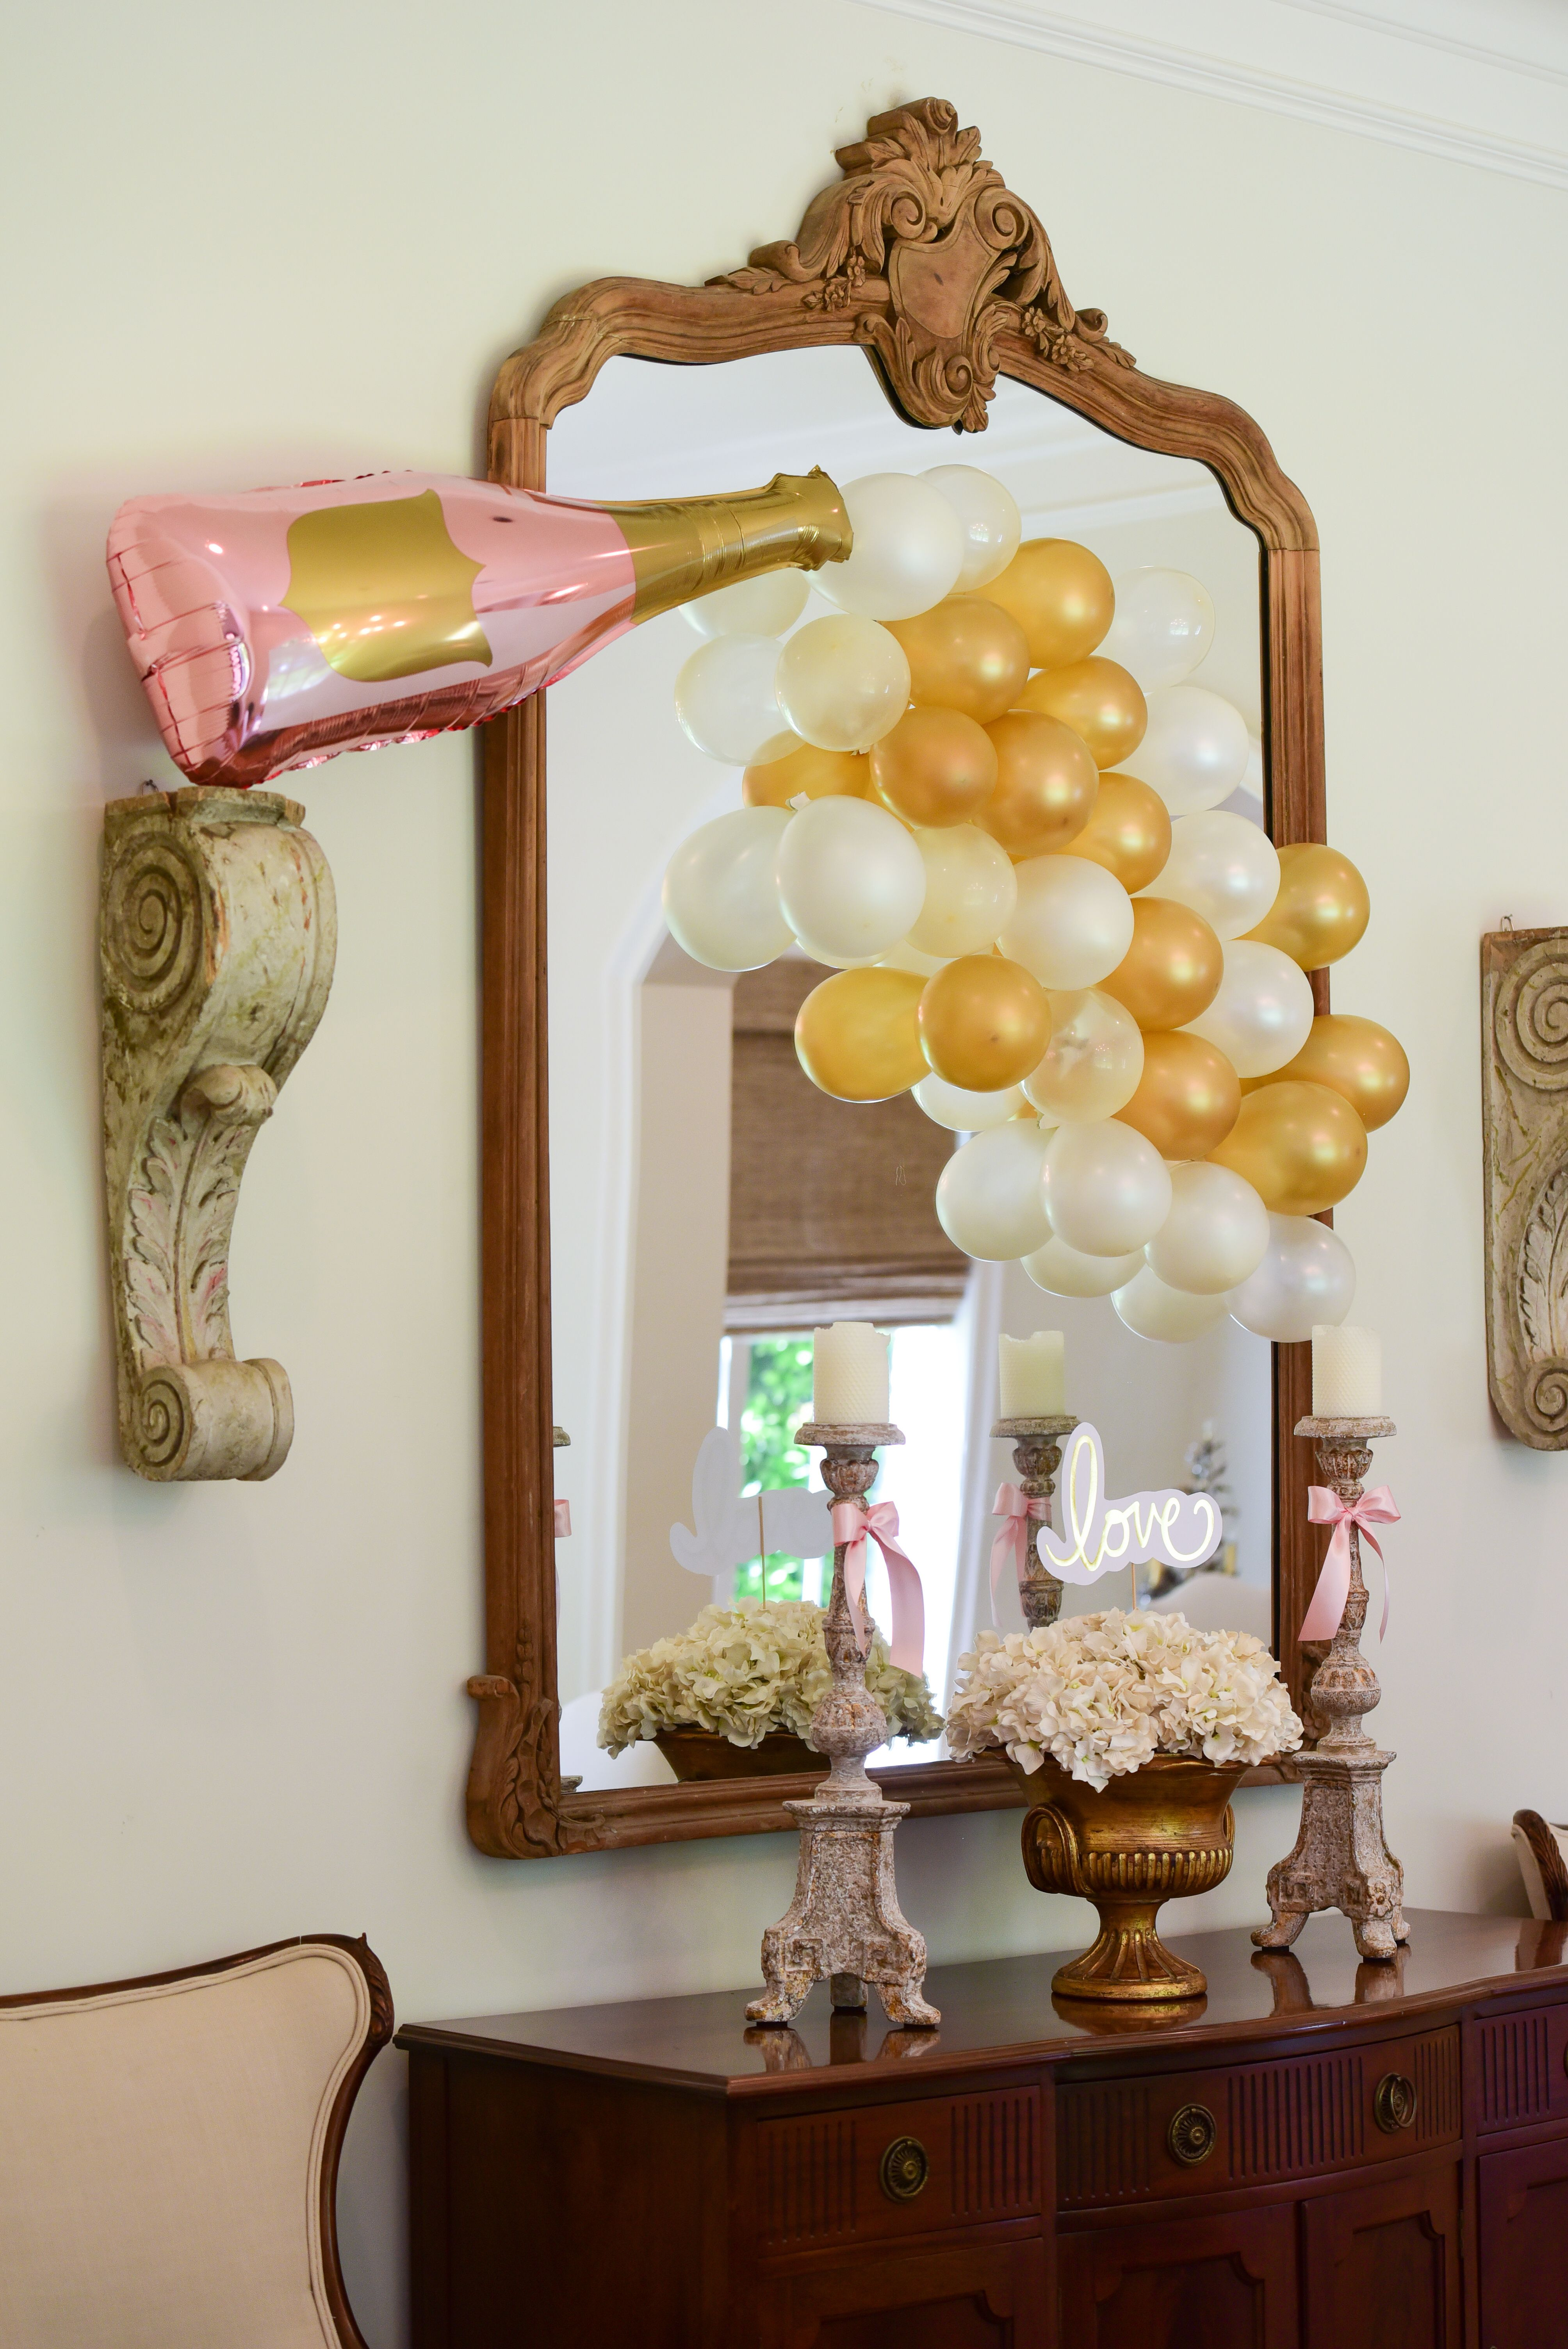 Pin by Claudia Jarrard on Bridal shower | Bridal shower ...